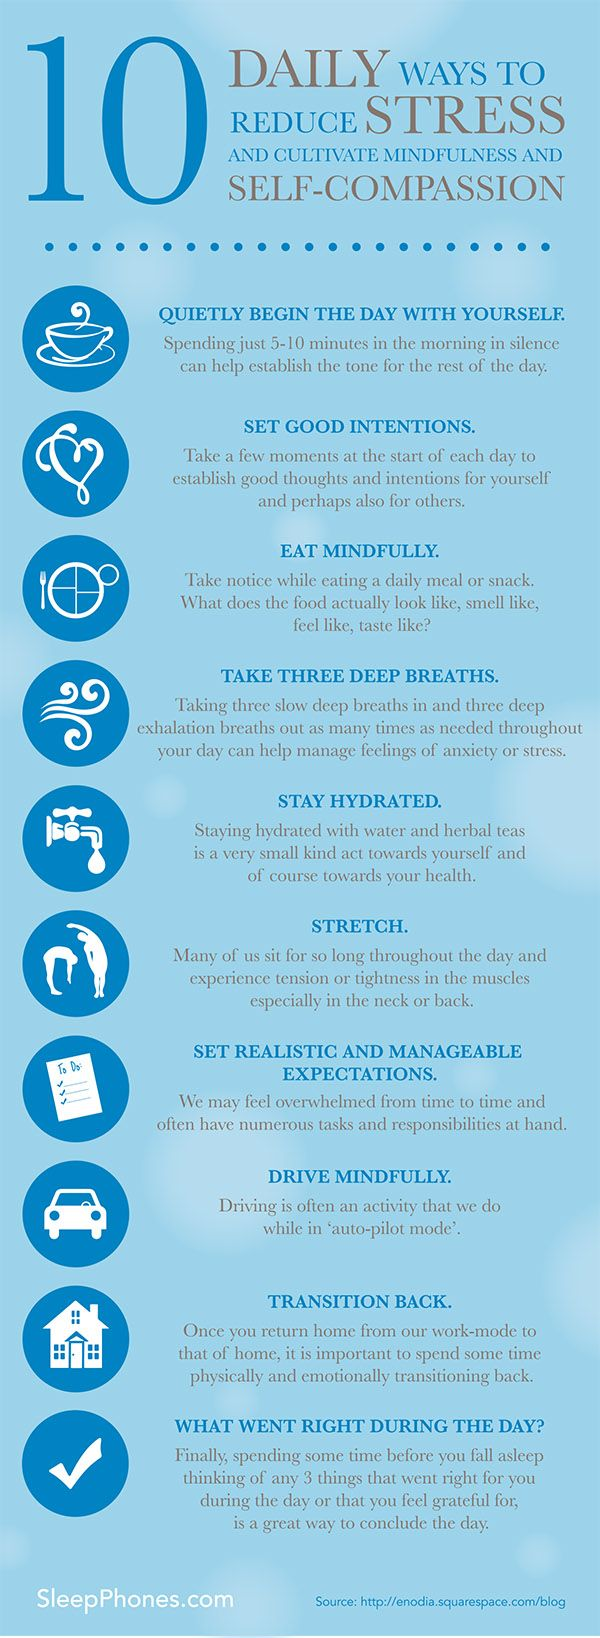 10 Daily Ways to Reduce Stress